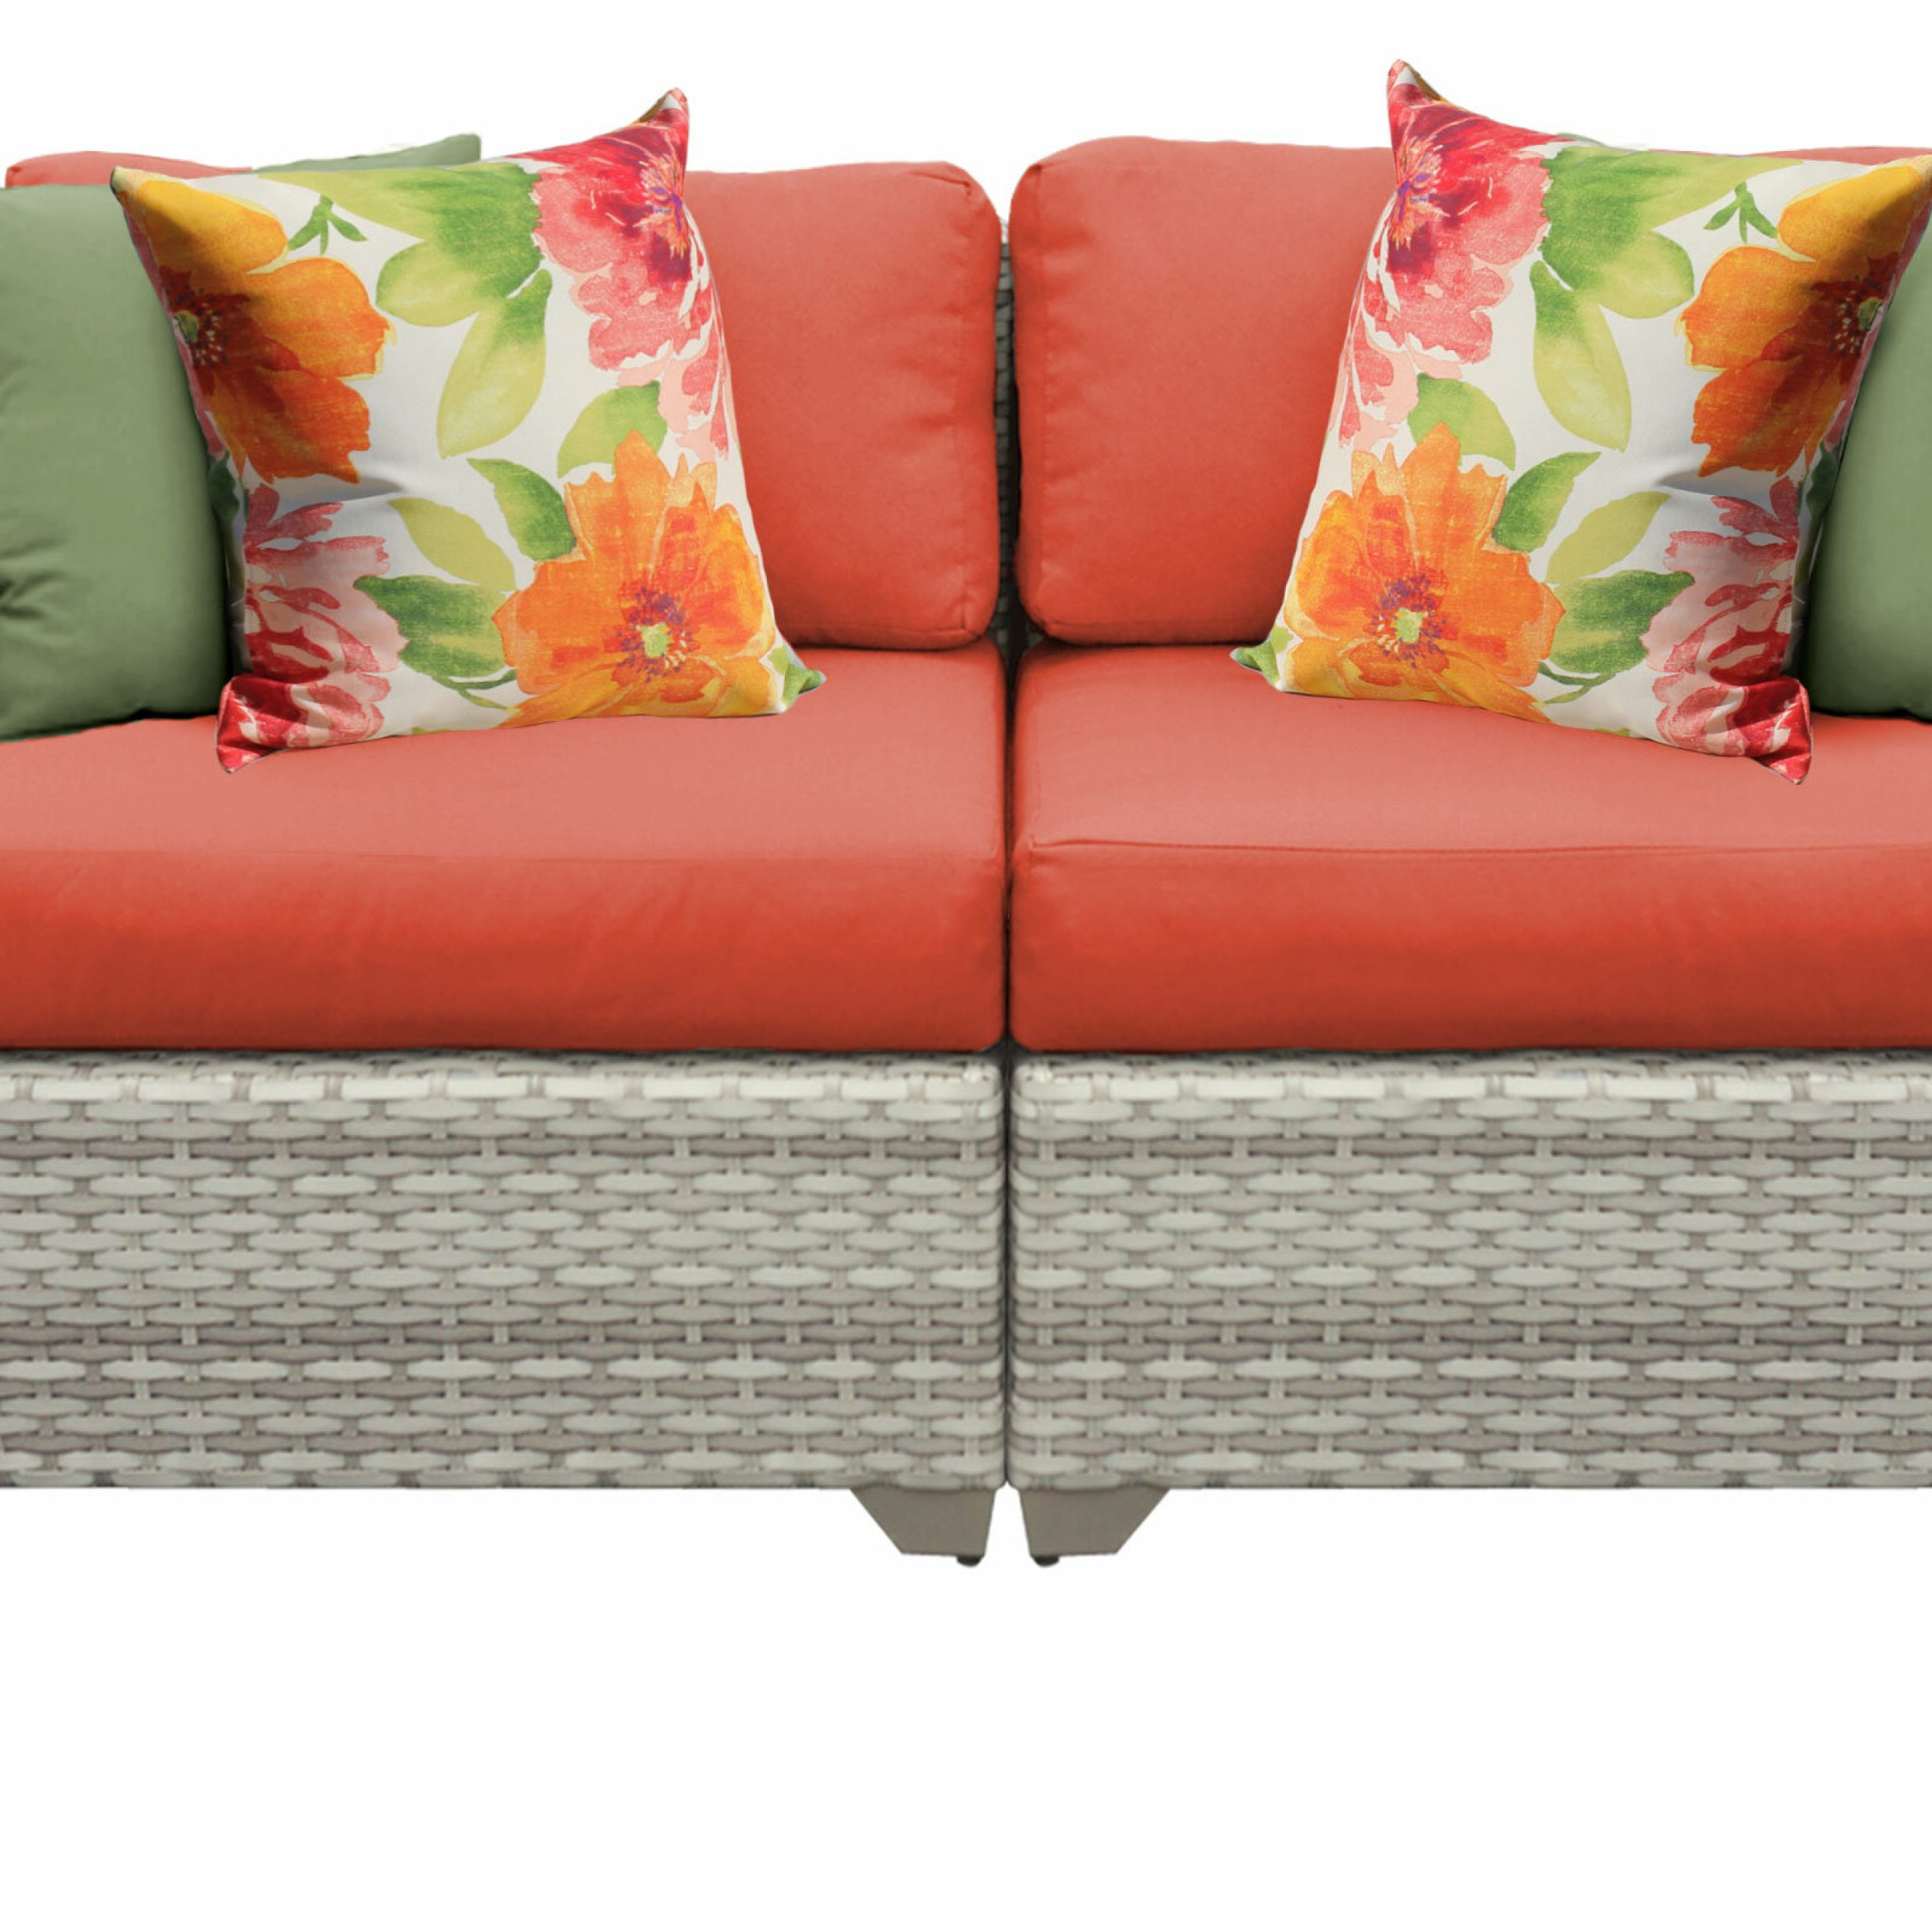 Falmouth Loveseat With Cushions Pertaining To Widely Used Kari Loveseats With Sunbrella Cushions (View 16 of 25)